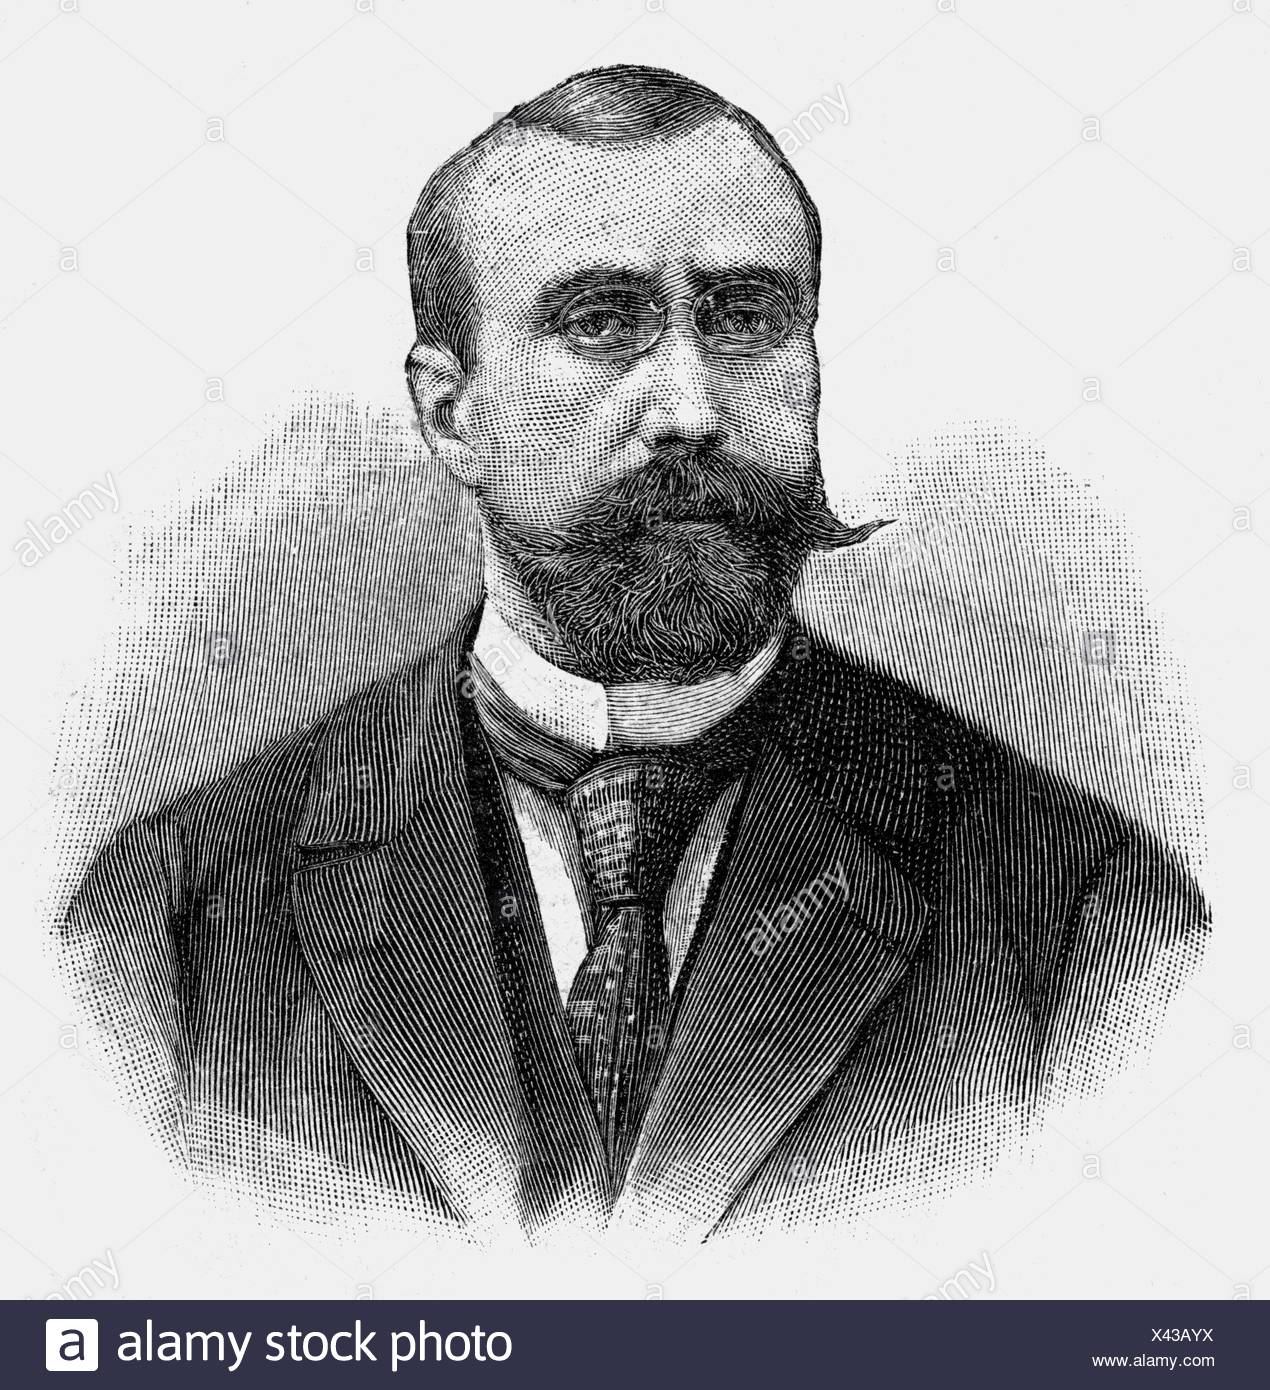 Habert, Marcel, second half of the 19th century, French politician, portrait, wood engraving, Additional-Rights-Clearances-NA - Stock Image